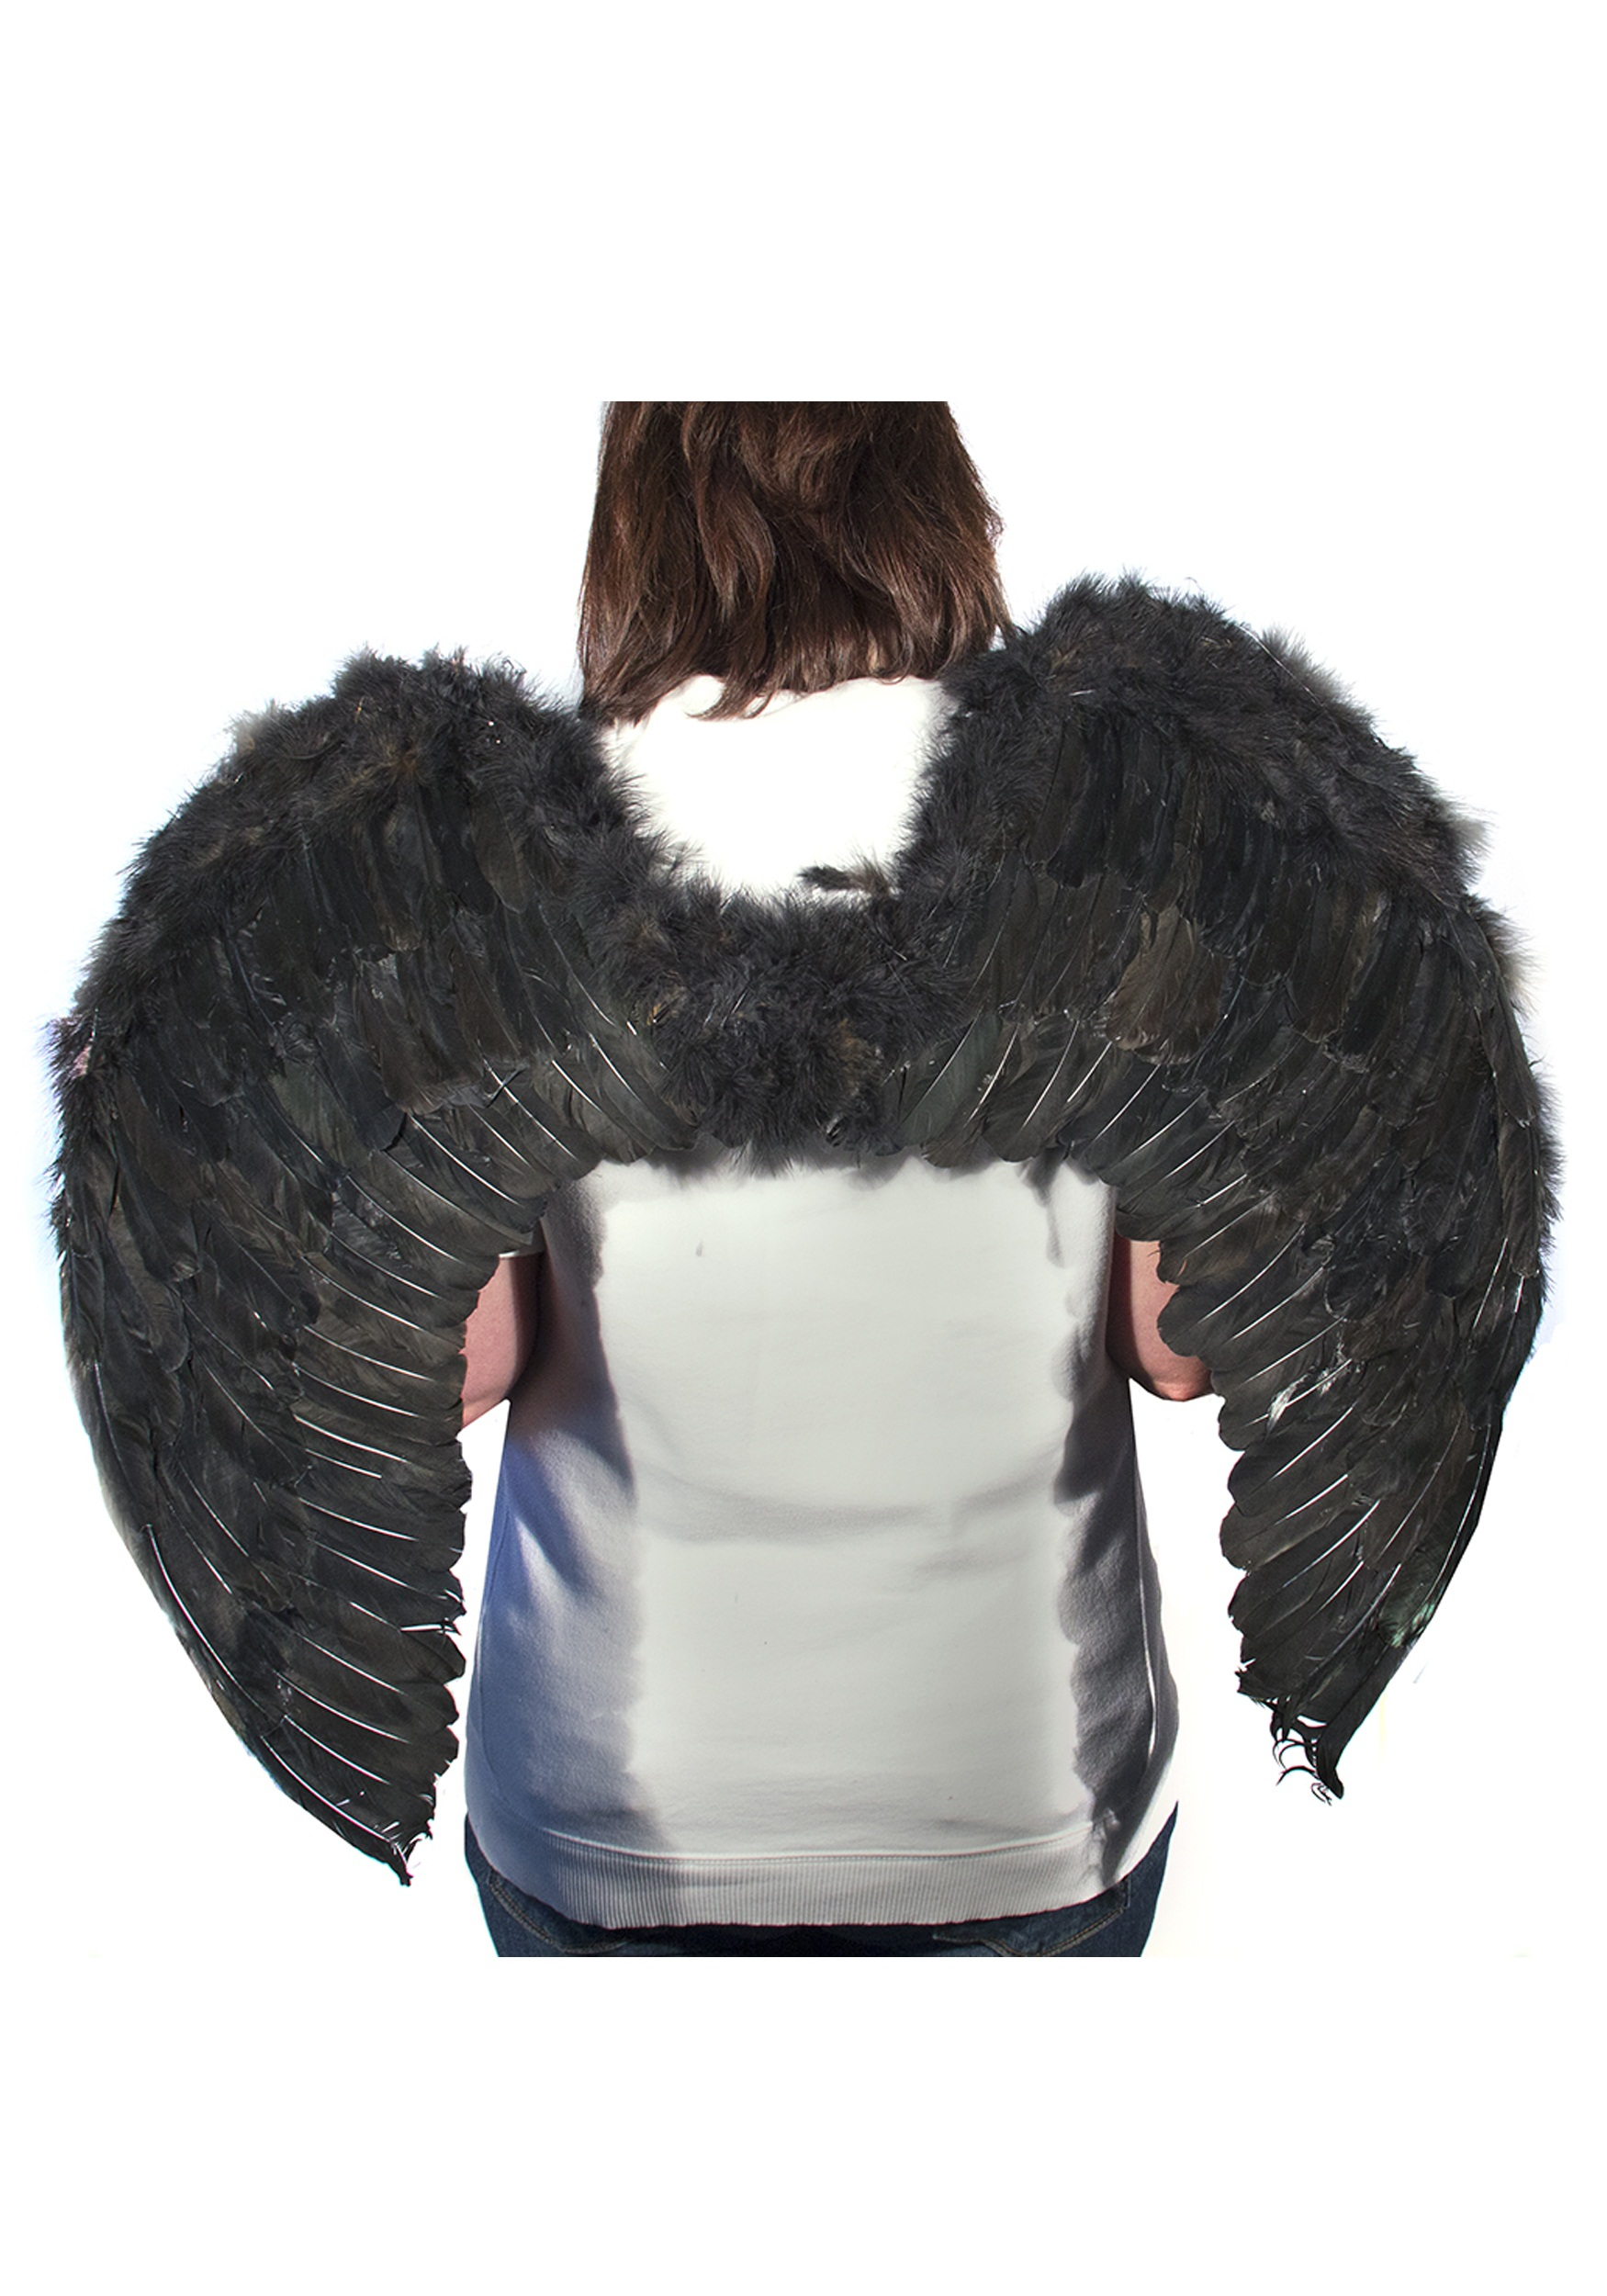 Black Angel Wings Costume | www.imgkid.com - The Image Kid ...